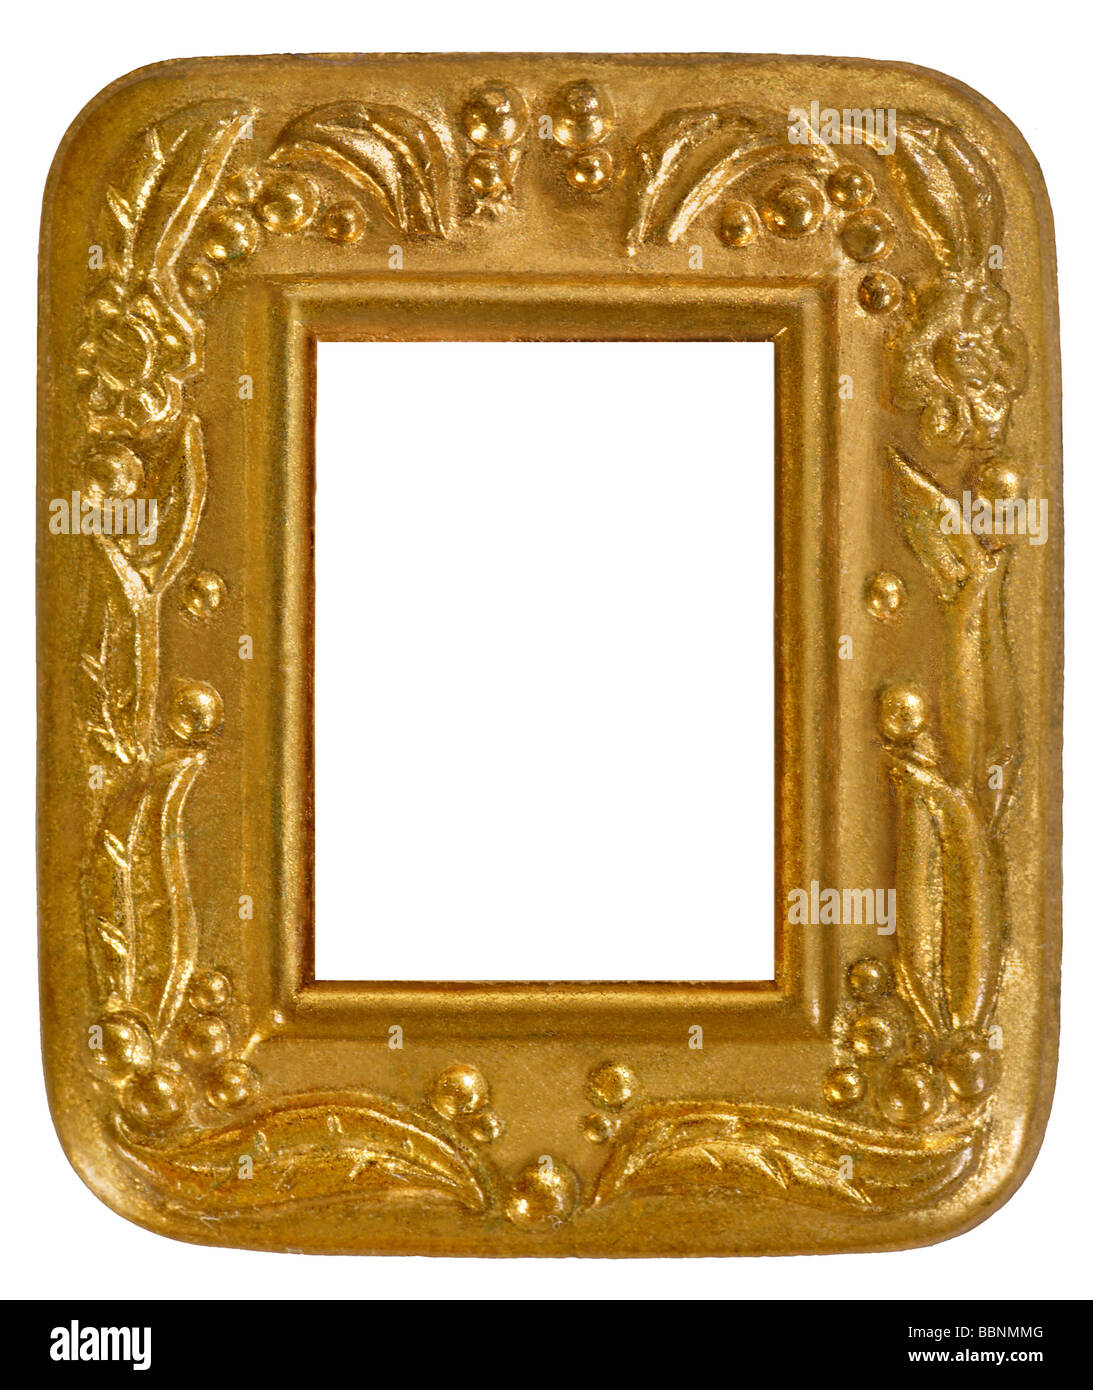 antiques, picture frame, Germany, circa 1910, Additional-Rights-Clearances-NA - Stock Image